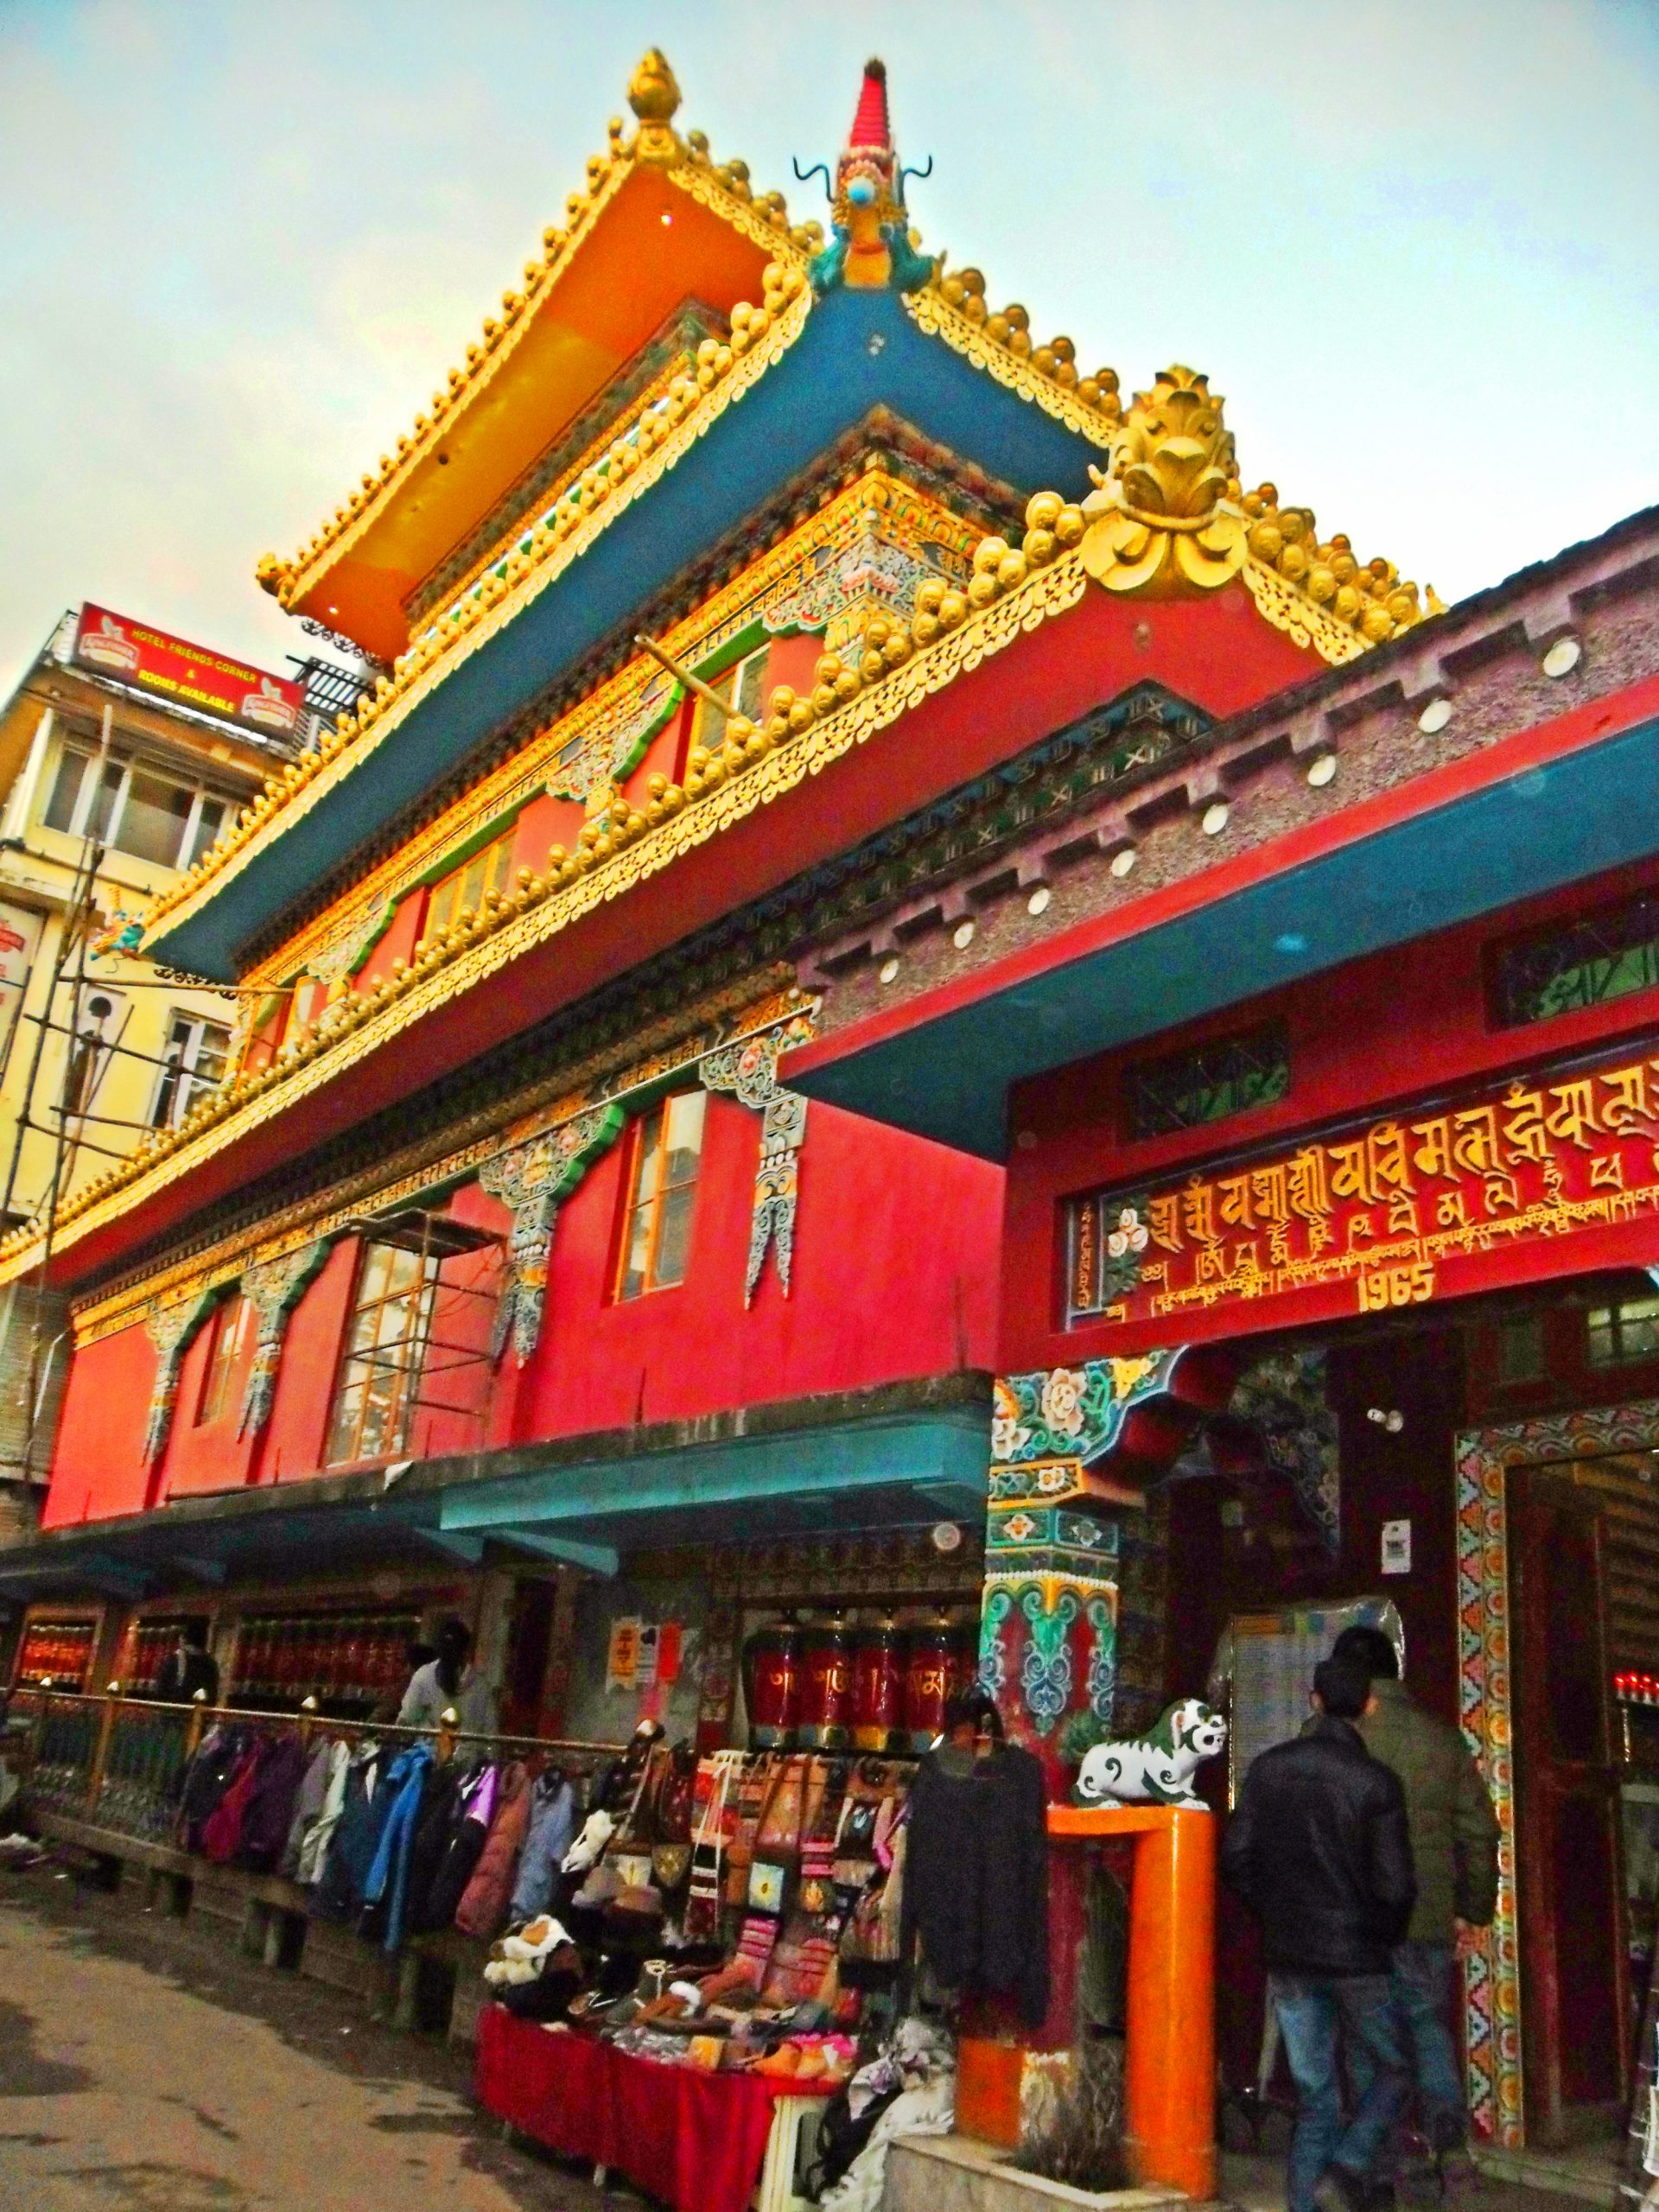 Kalachakra Temple - Must-Visit Places in Dharamshala and McLeodganj